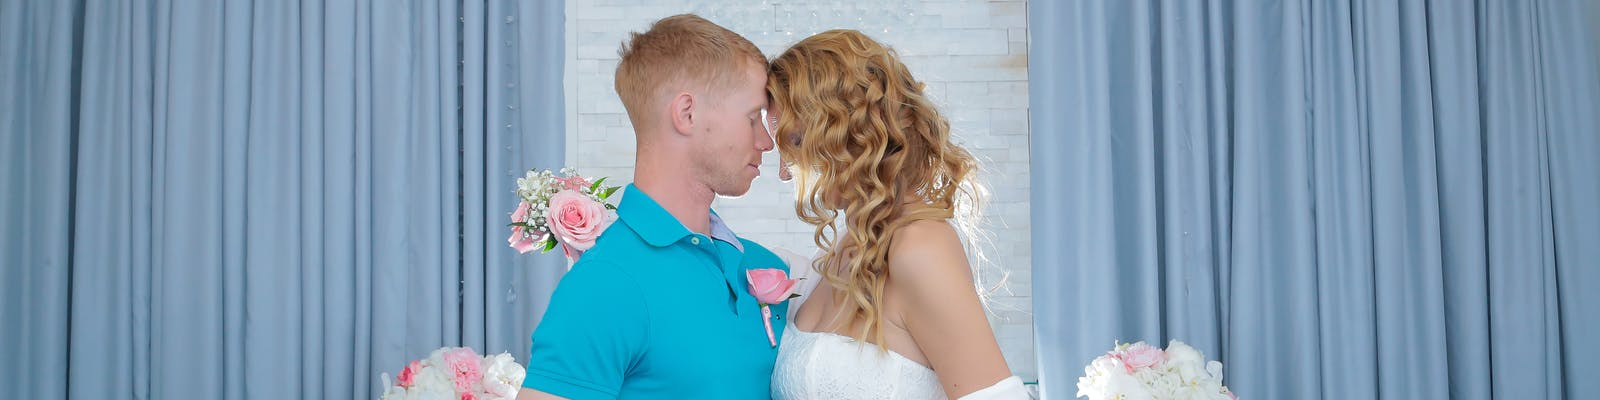 Newlyweds romantically touch foreheads in their gorgeously lit wedding chapel